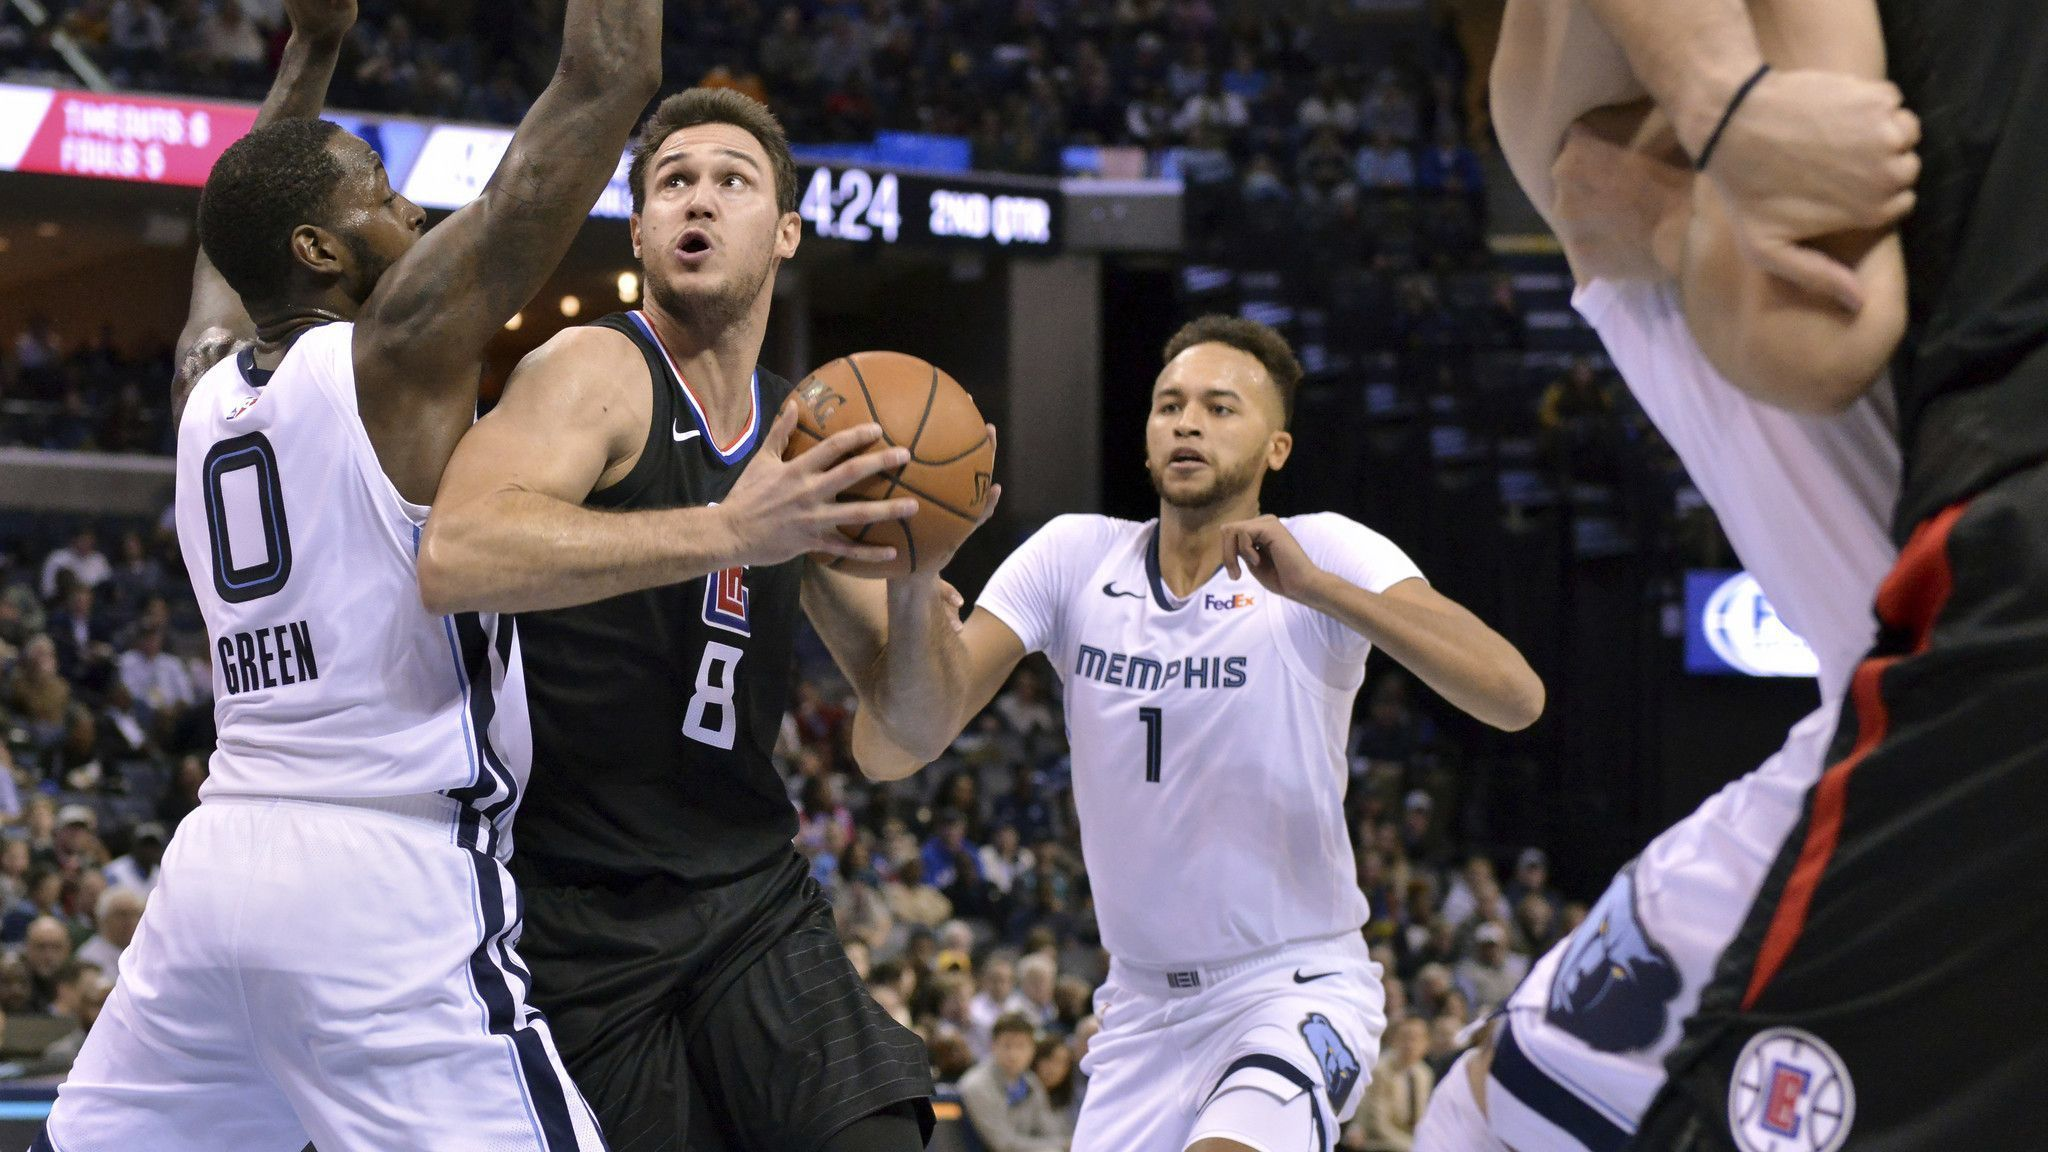 Clippers' poor offensive performance results in 96-86 loss to Grizzlies